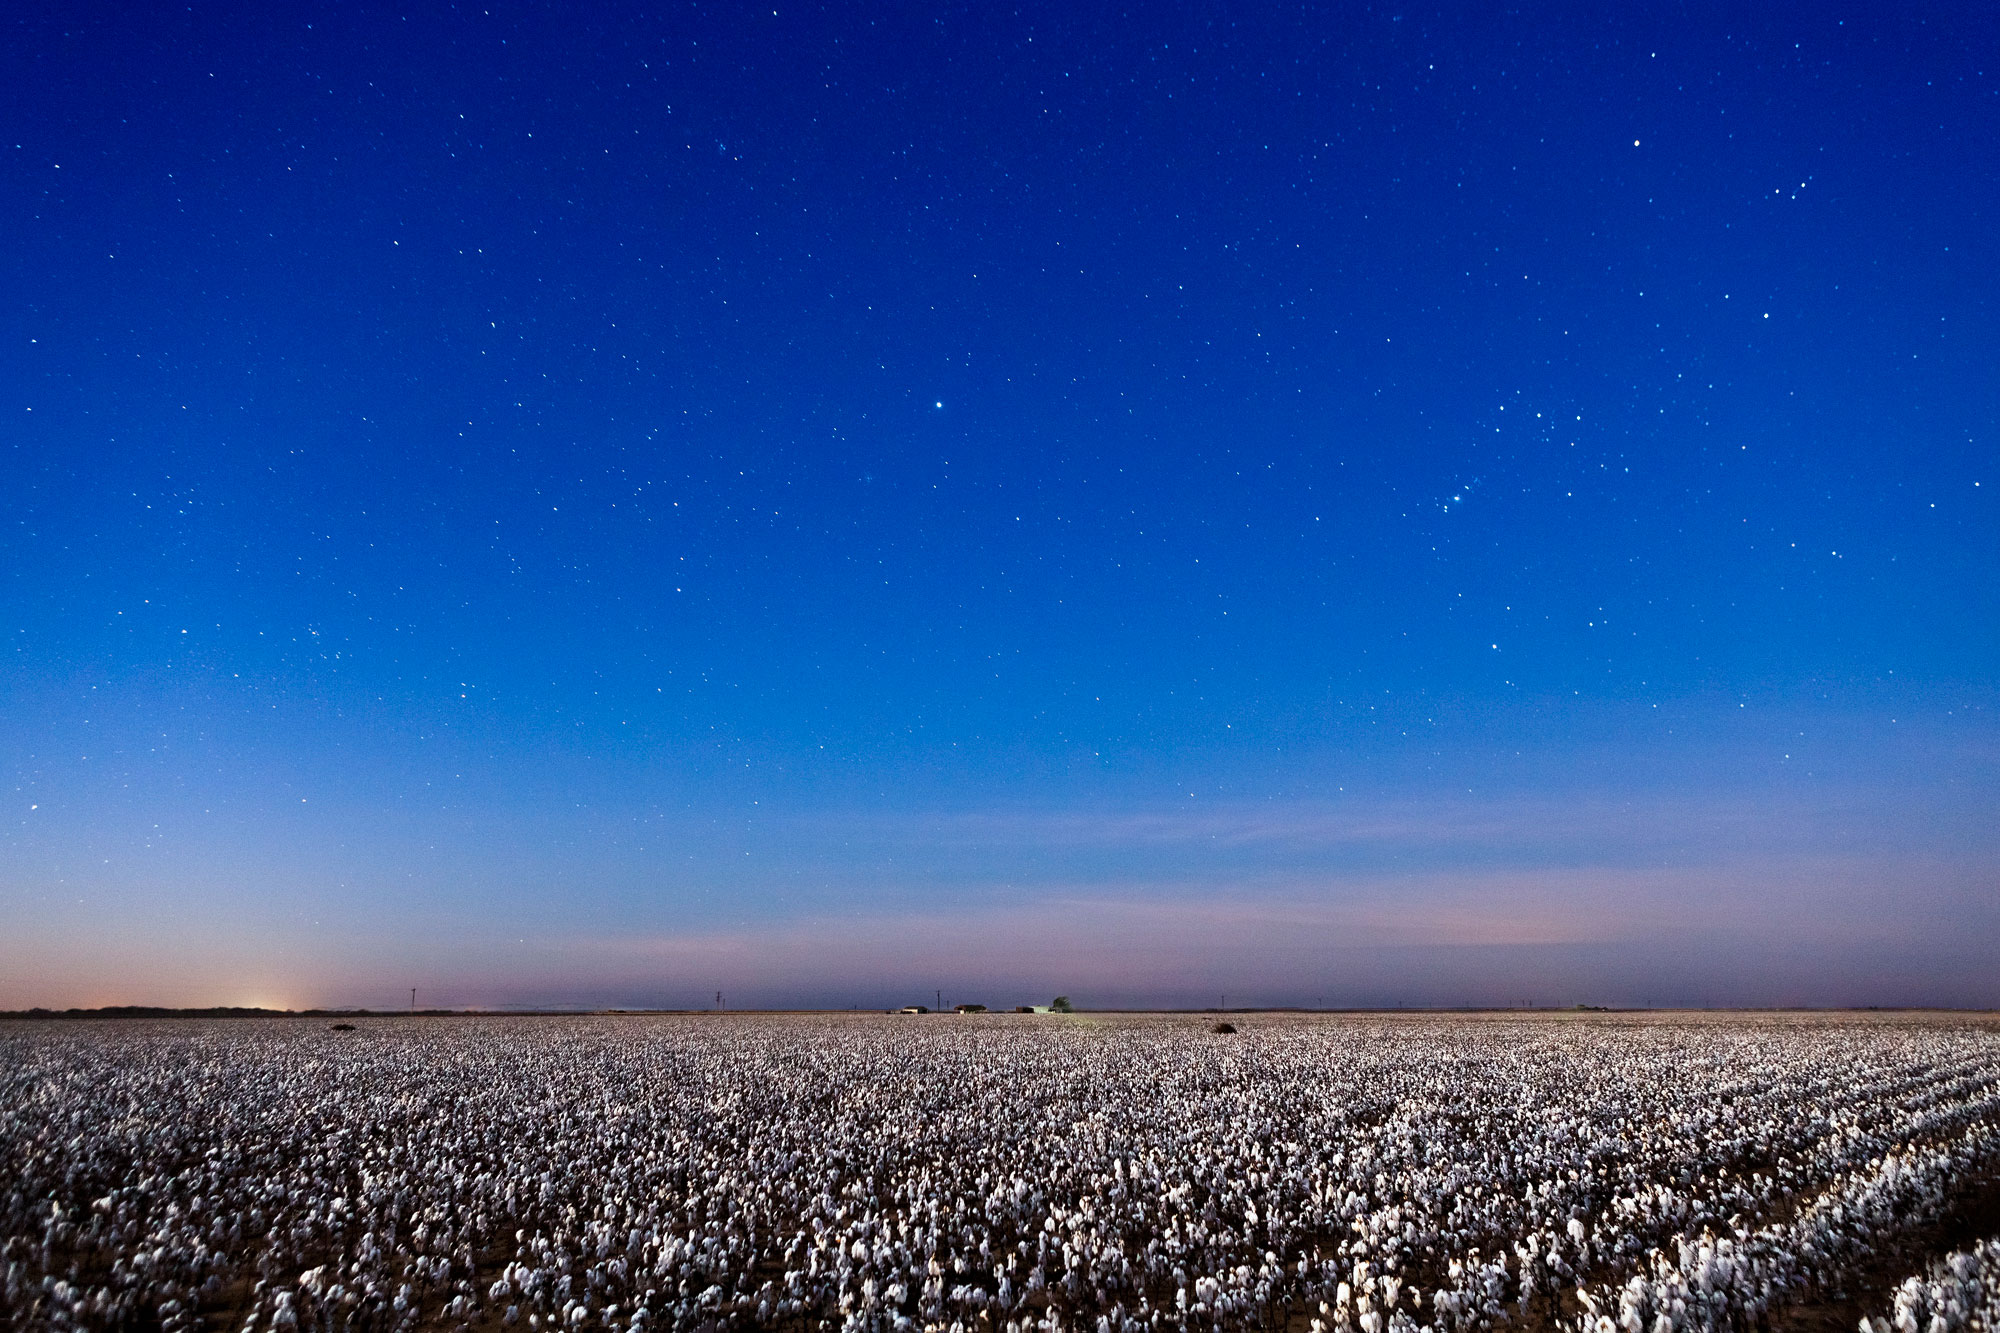 Cotton Field and stars and night